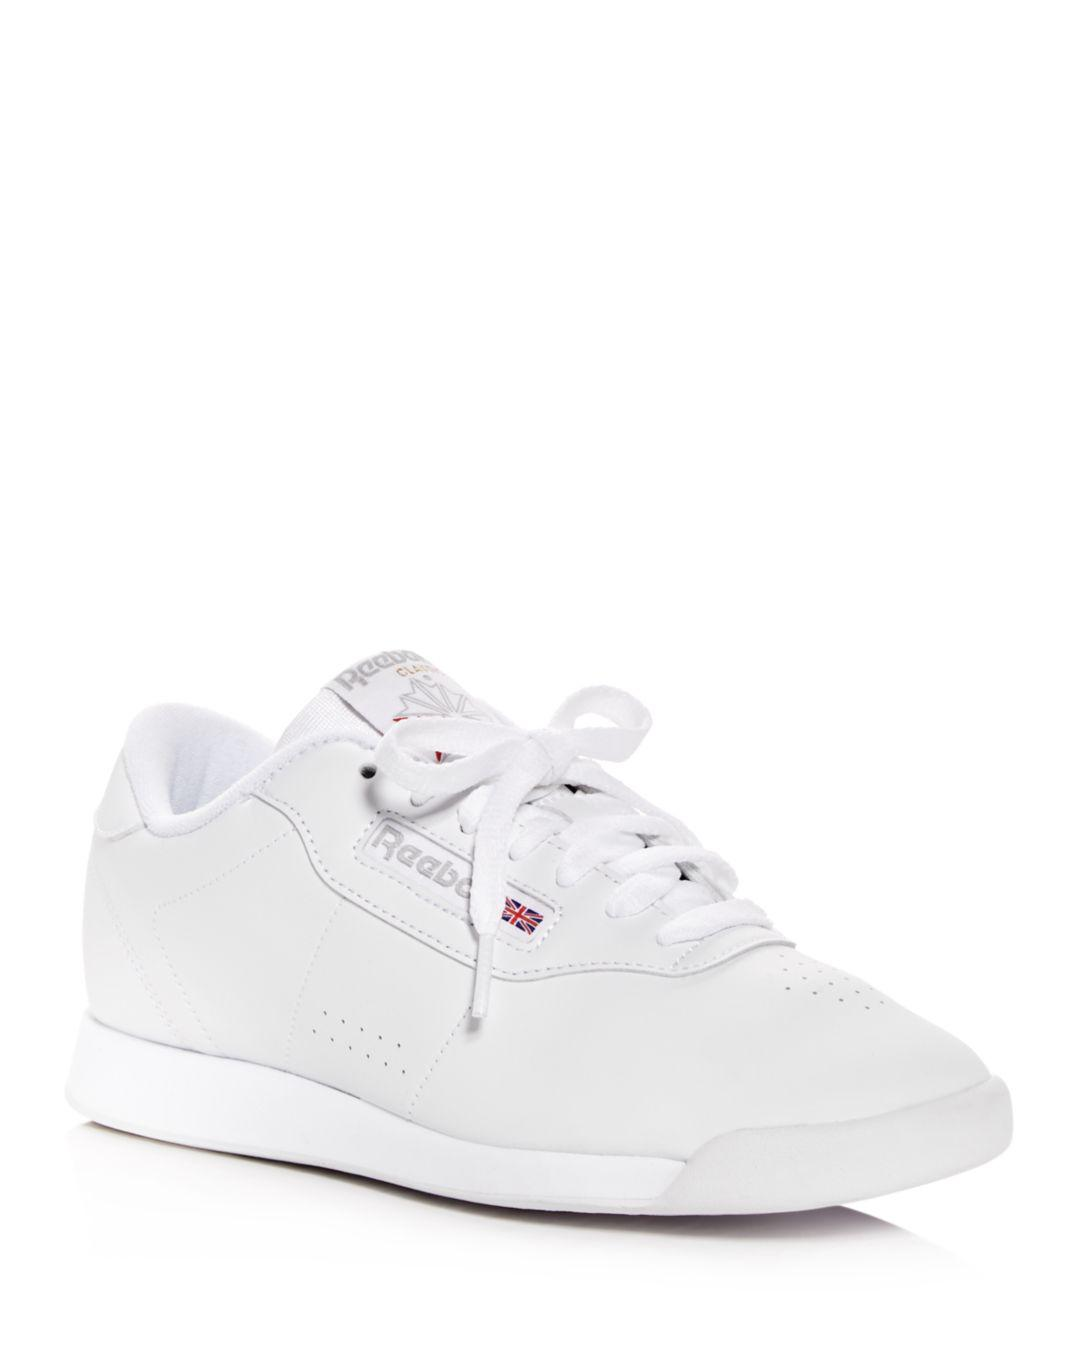 d812c5320bda24 Lyst - Reebok Women s Princess Faux Leather Lace Up Sneakers in White